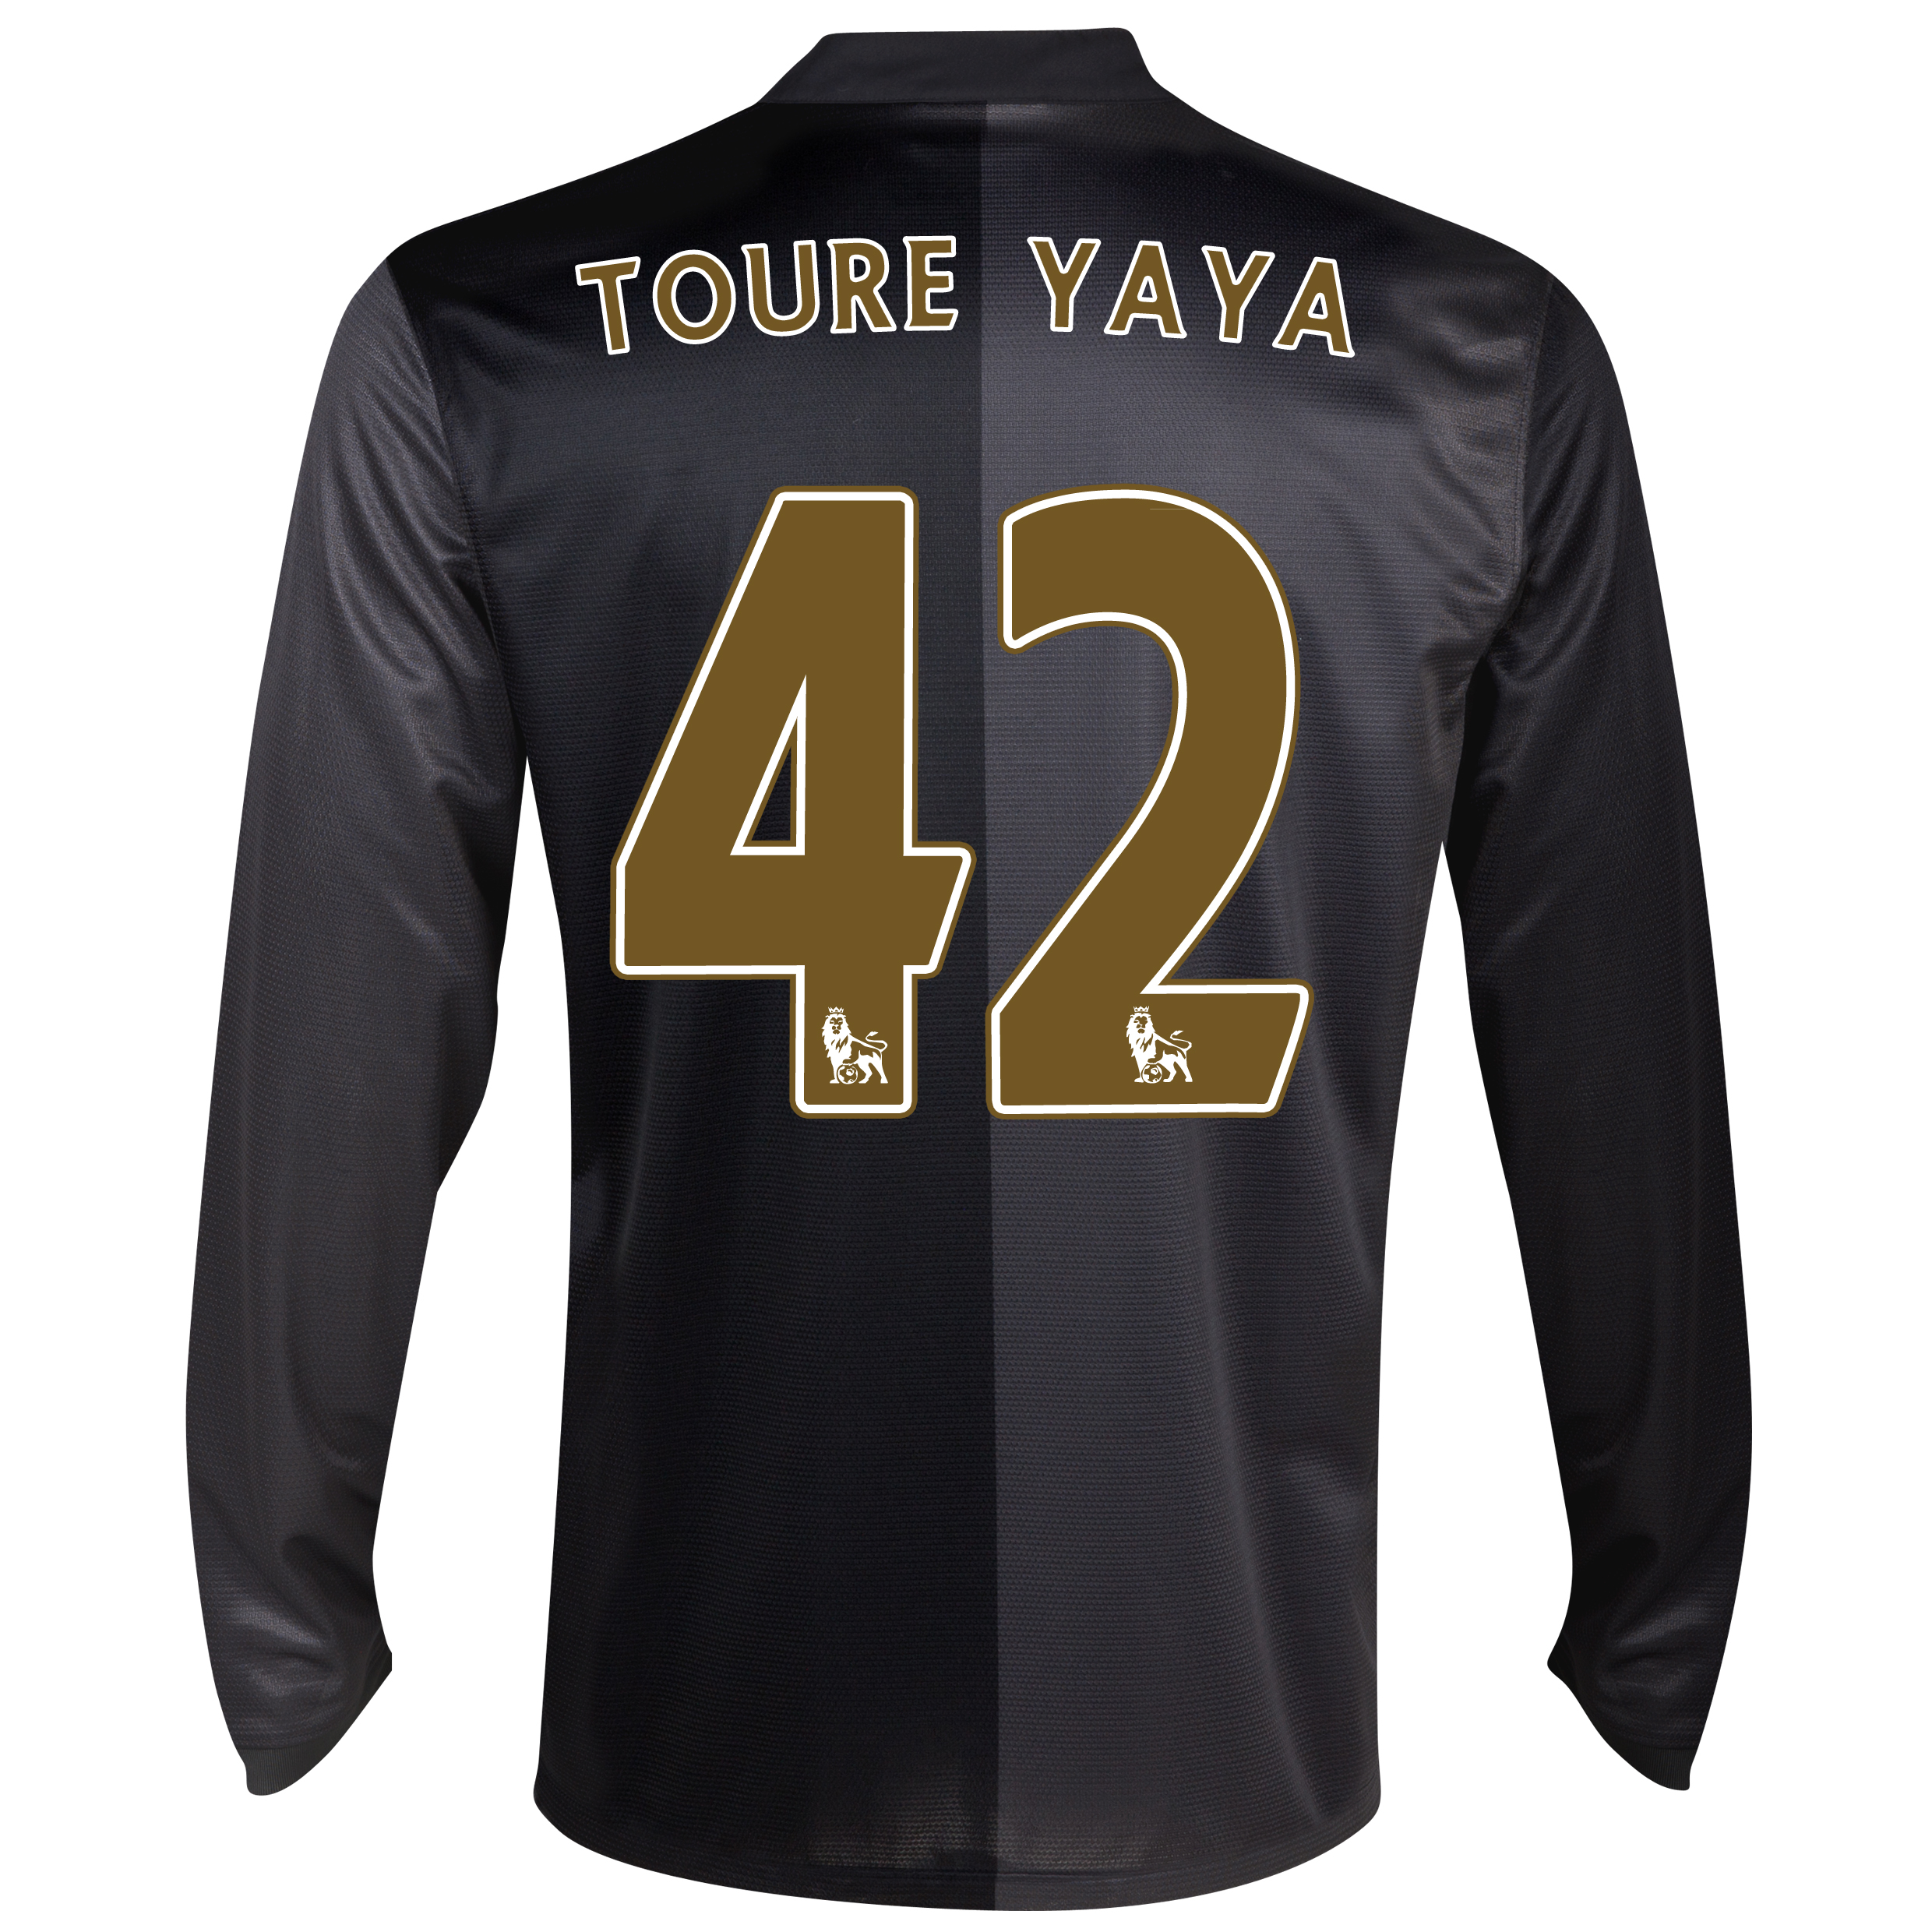 Manchester City Away Shirt 2013/14 - Long Sleeved with Toure Yaya 42 printing